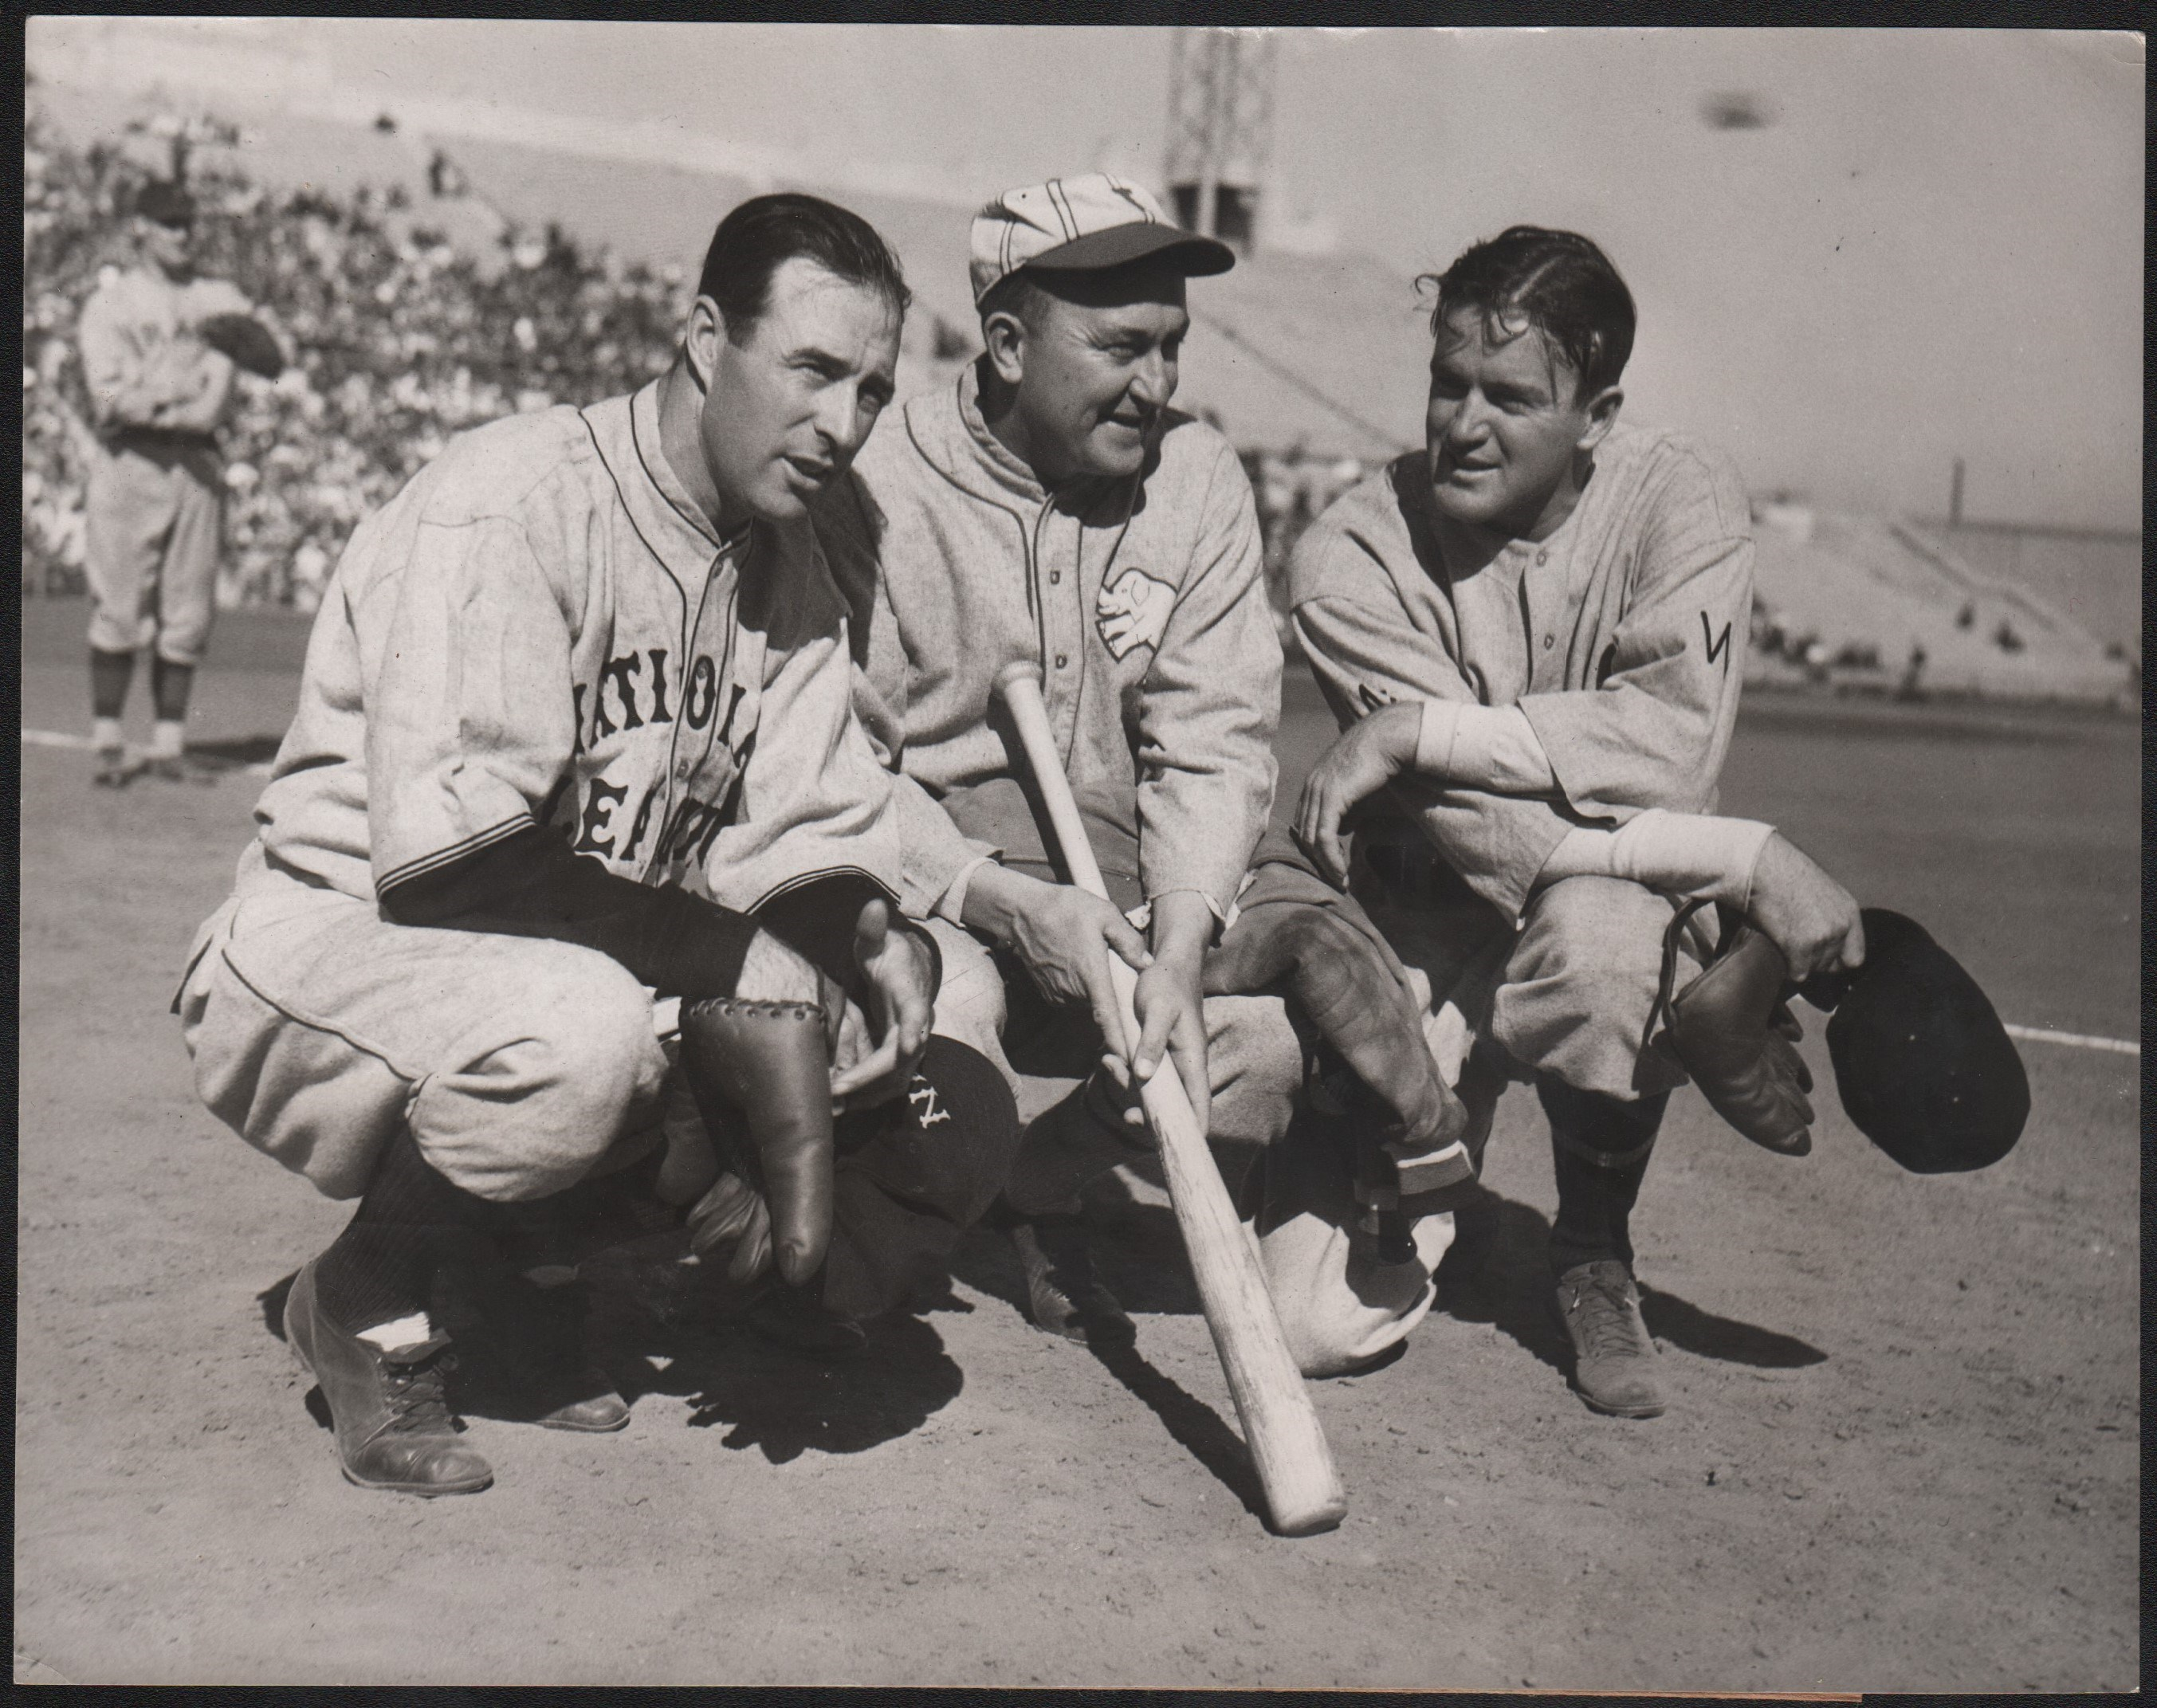 Baseball Photographs - Future Auctions